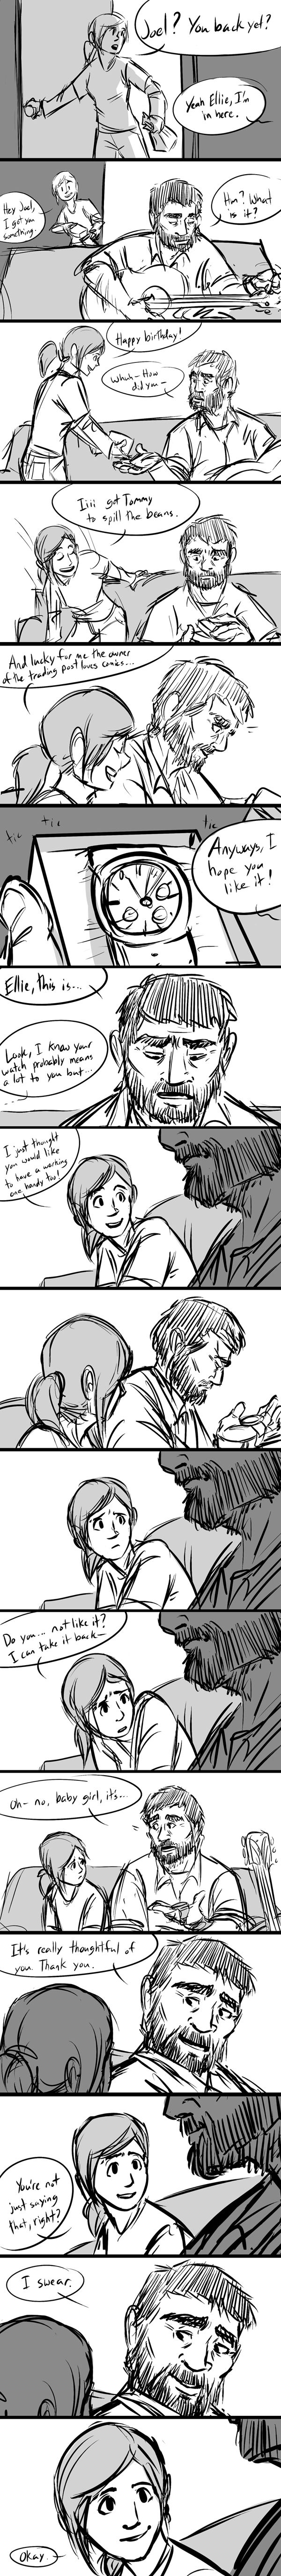 watch [The Last of Us comic] by Ununununium on deviantART now I'm just all out sobbing